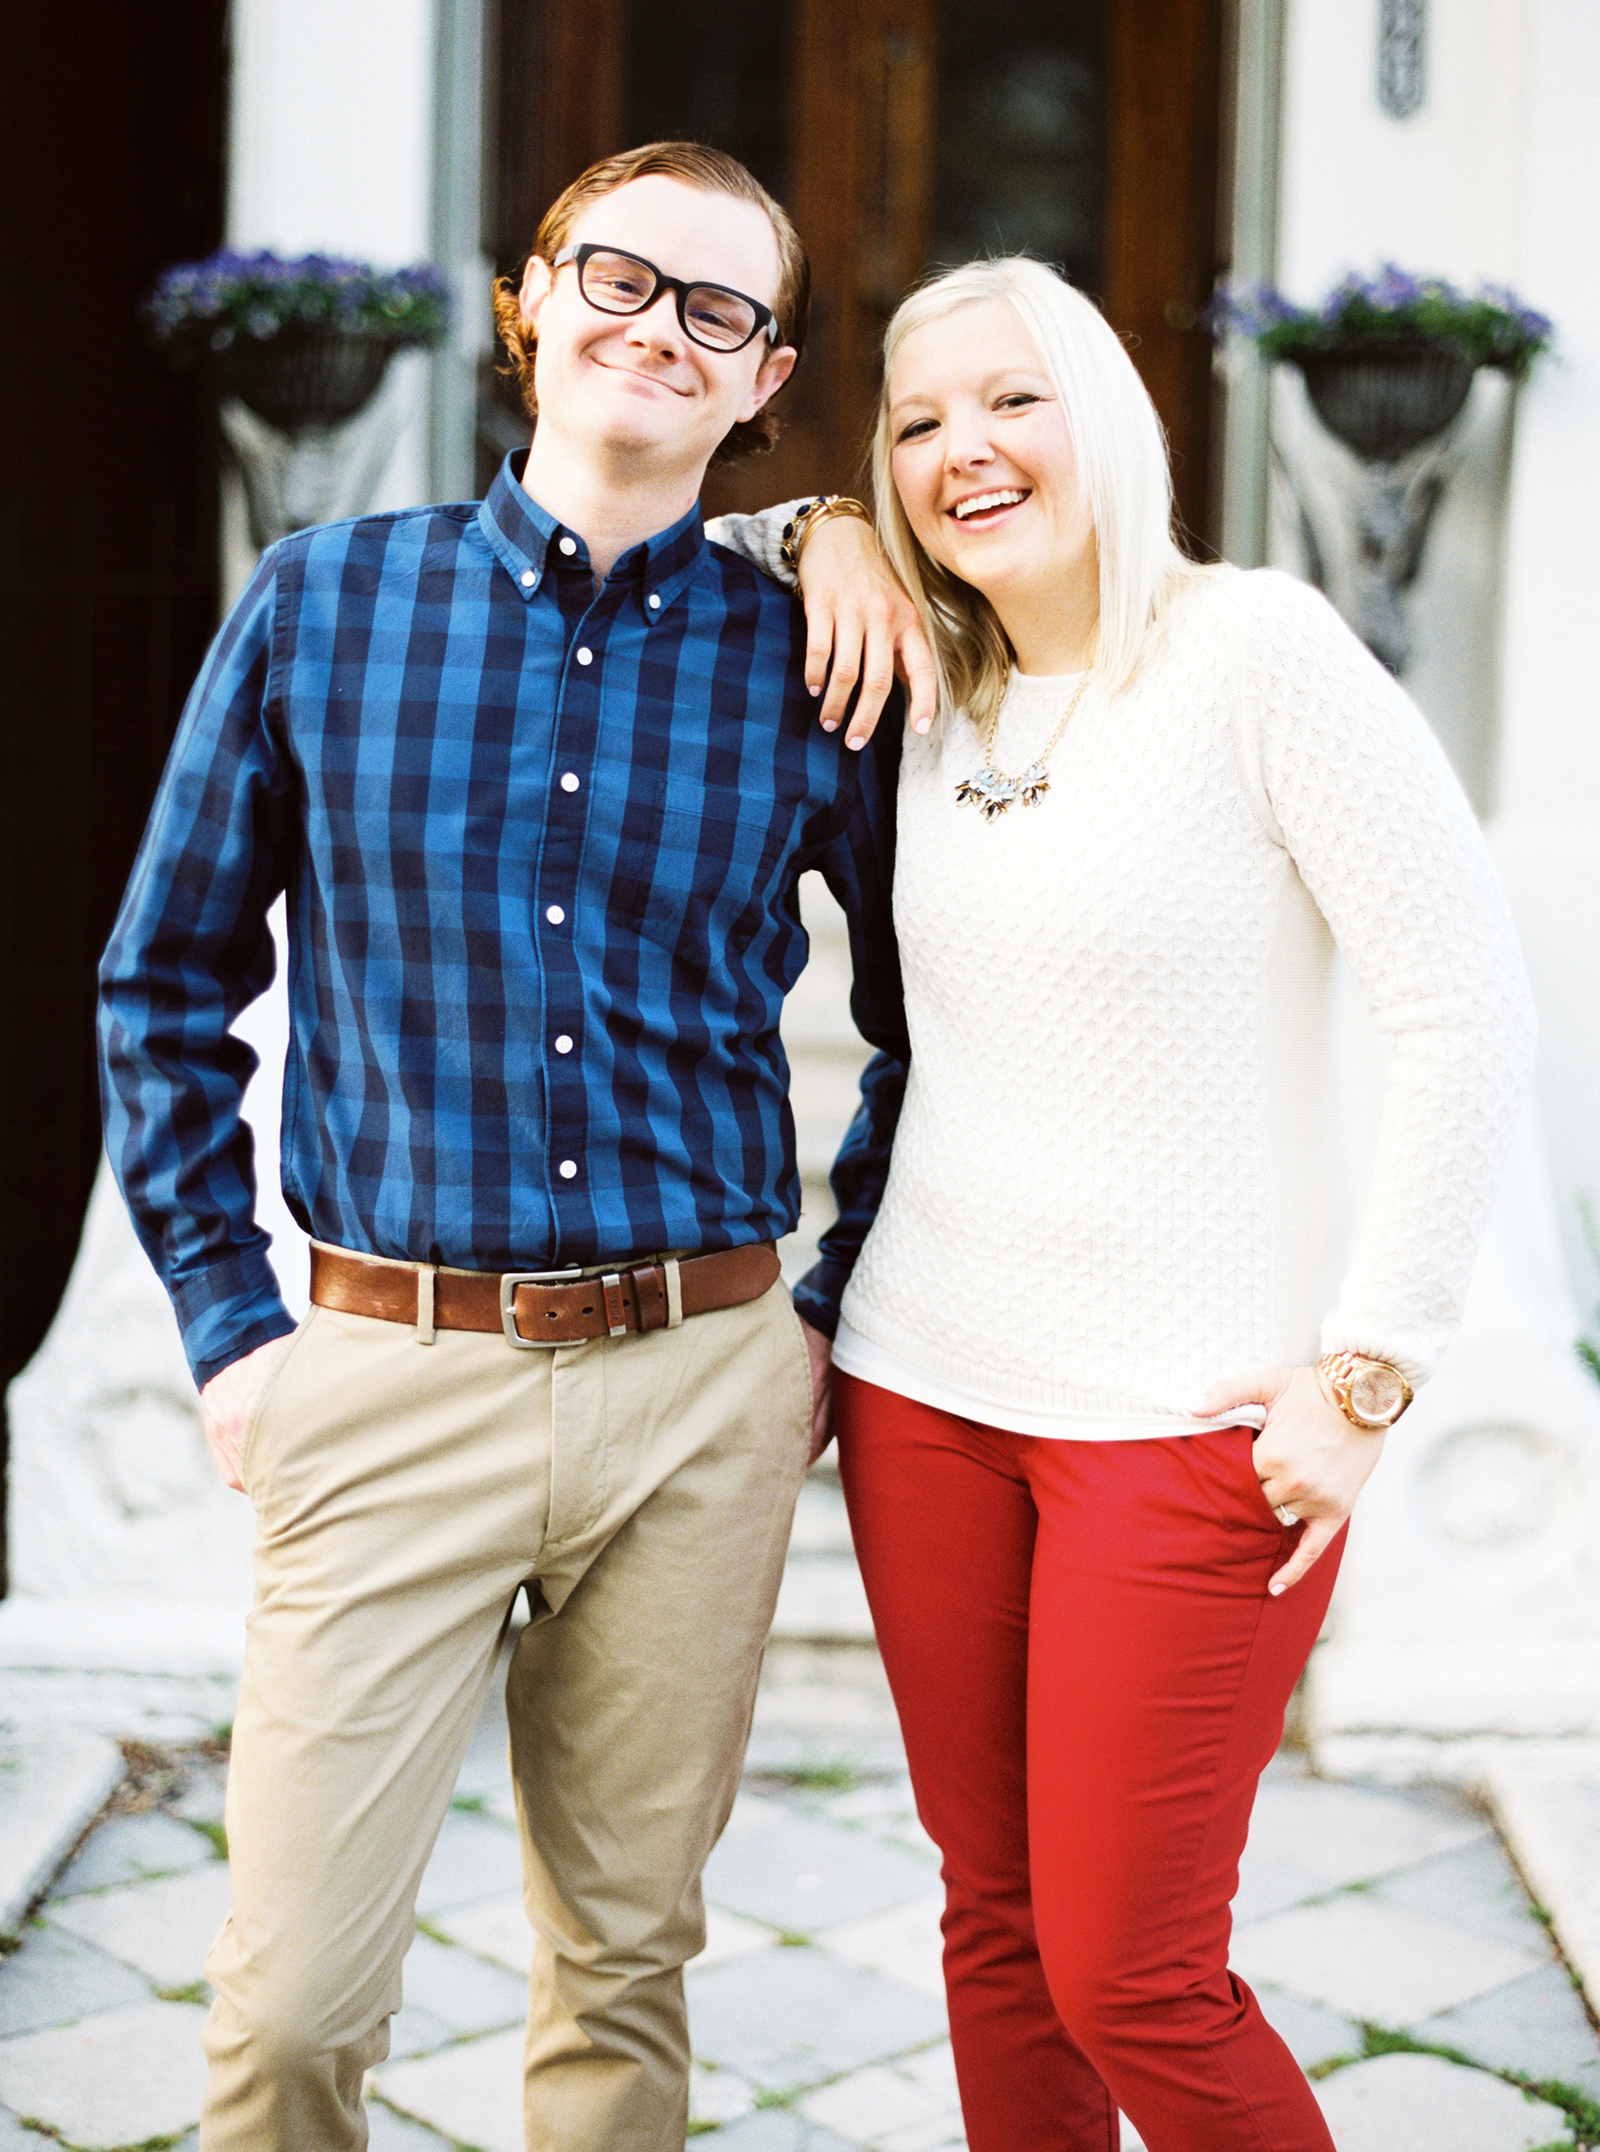 Lafayette Park Engagement Session by Oldani Photography St. Louis Wedding Photographers 48.jpg